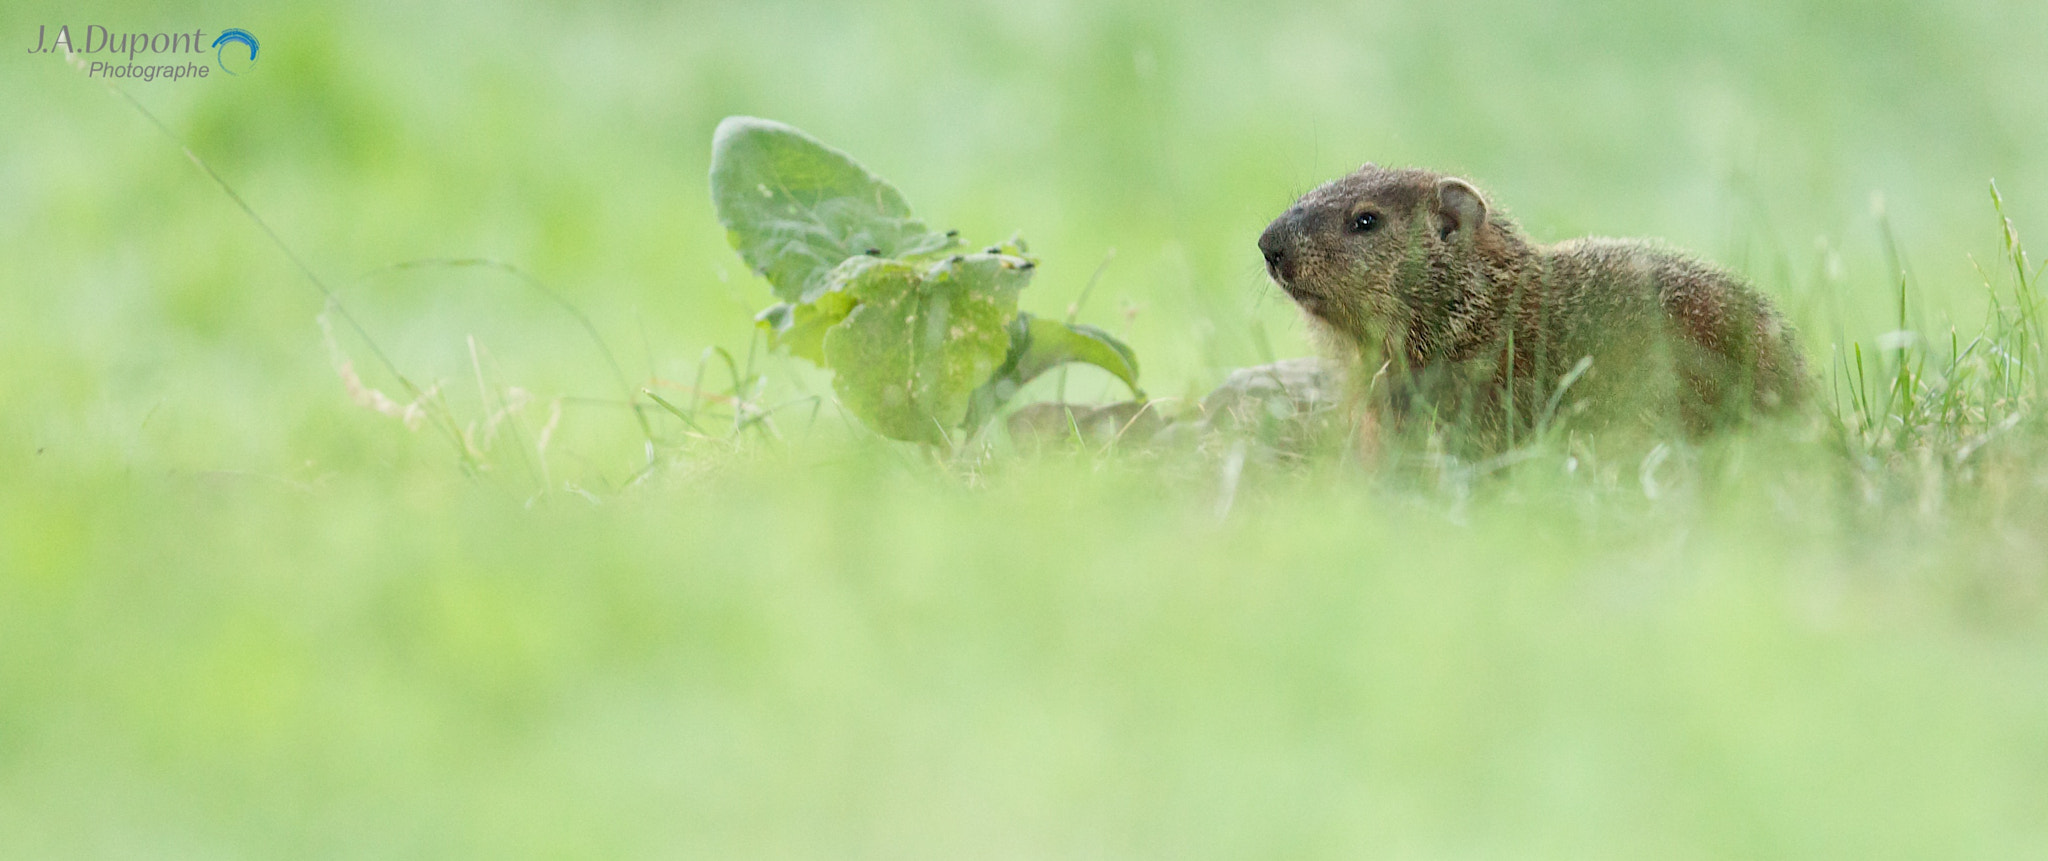 Photograph Groundhog summer day by Jacques-Andre Dupont on 500px